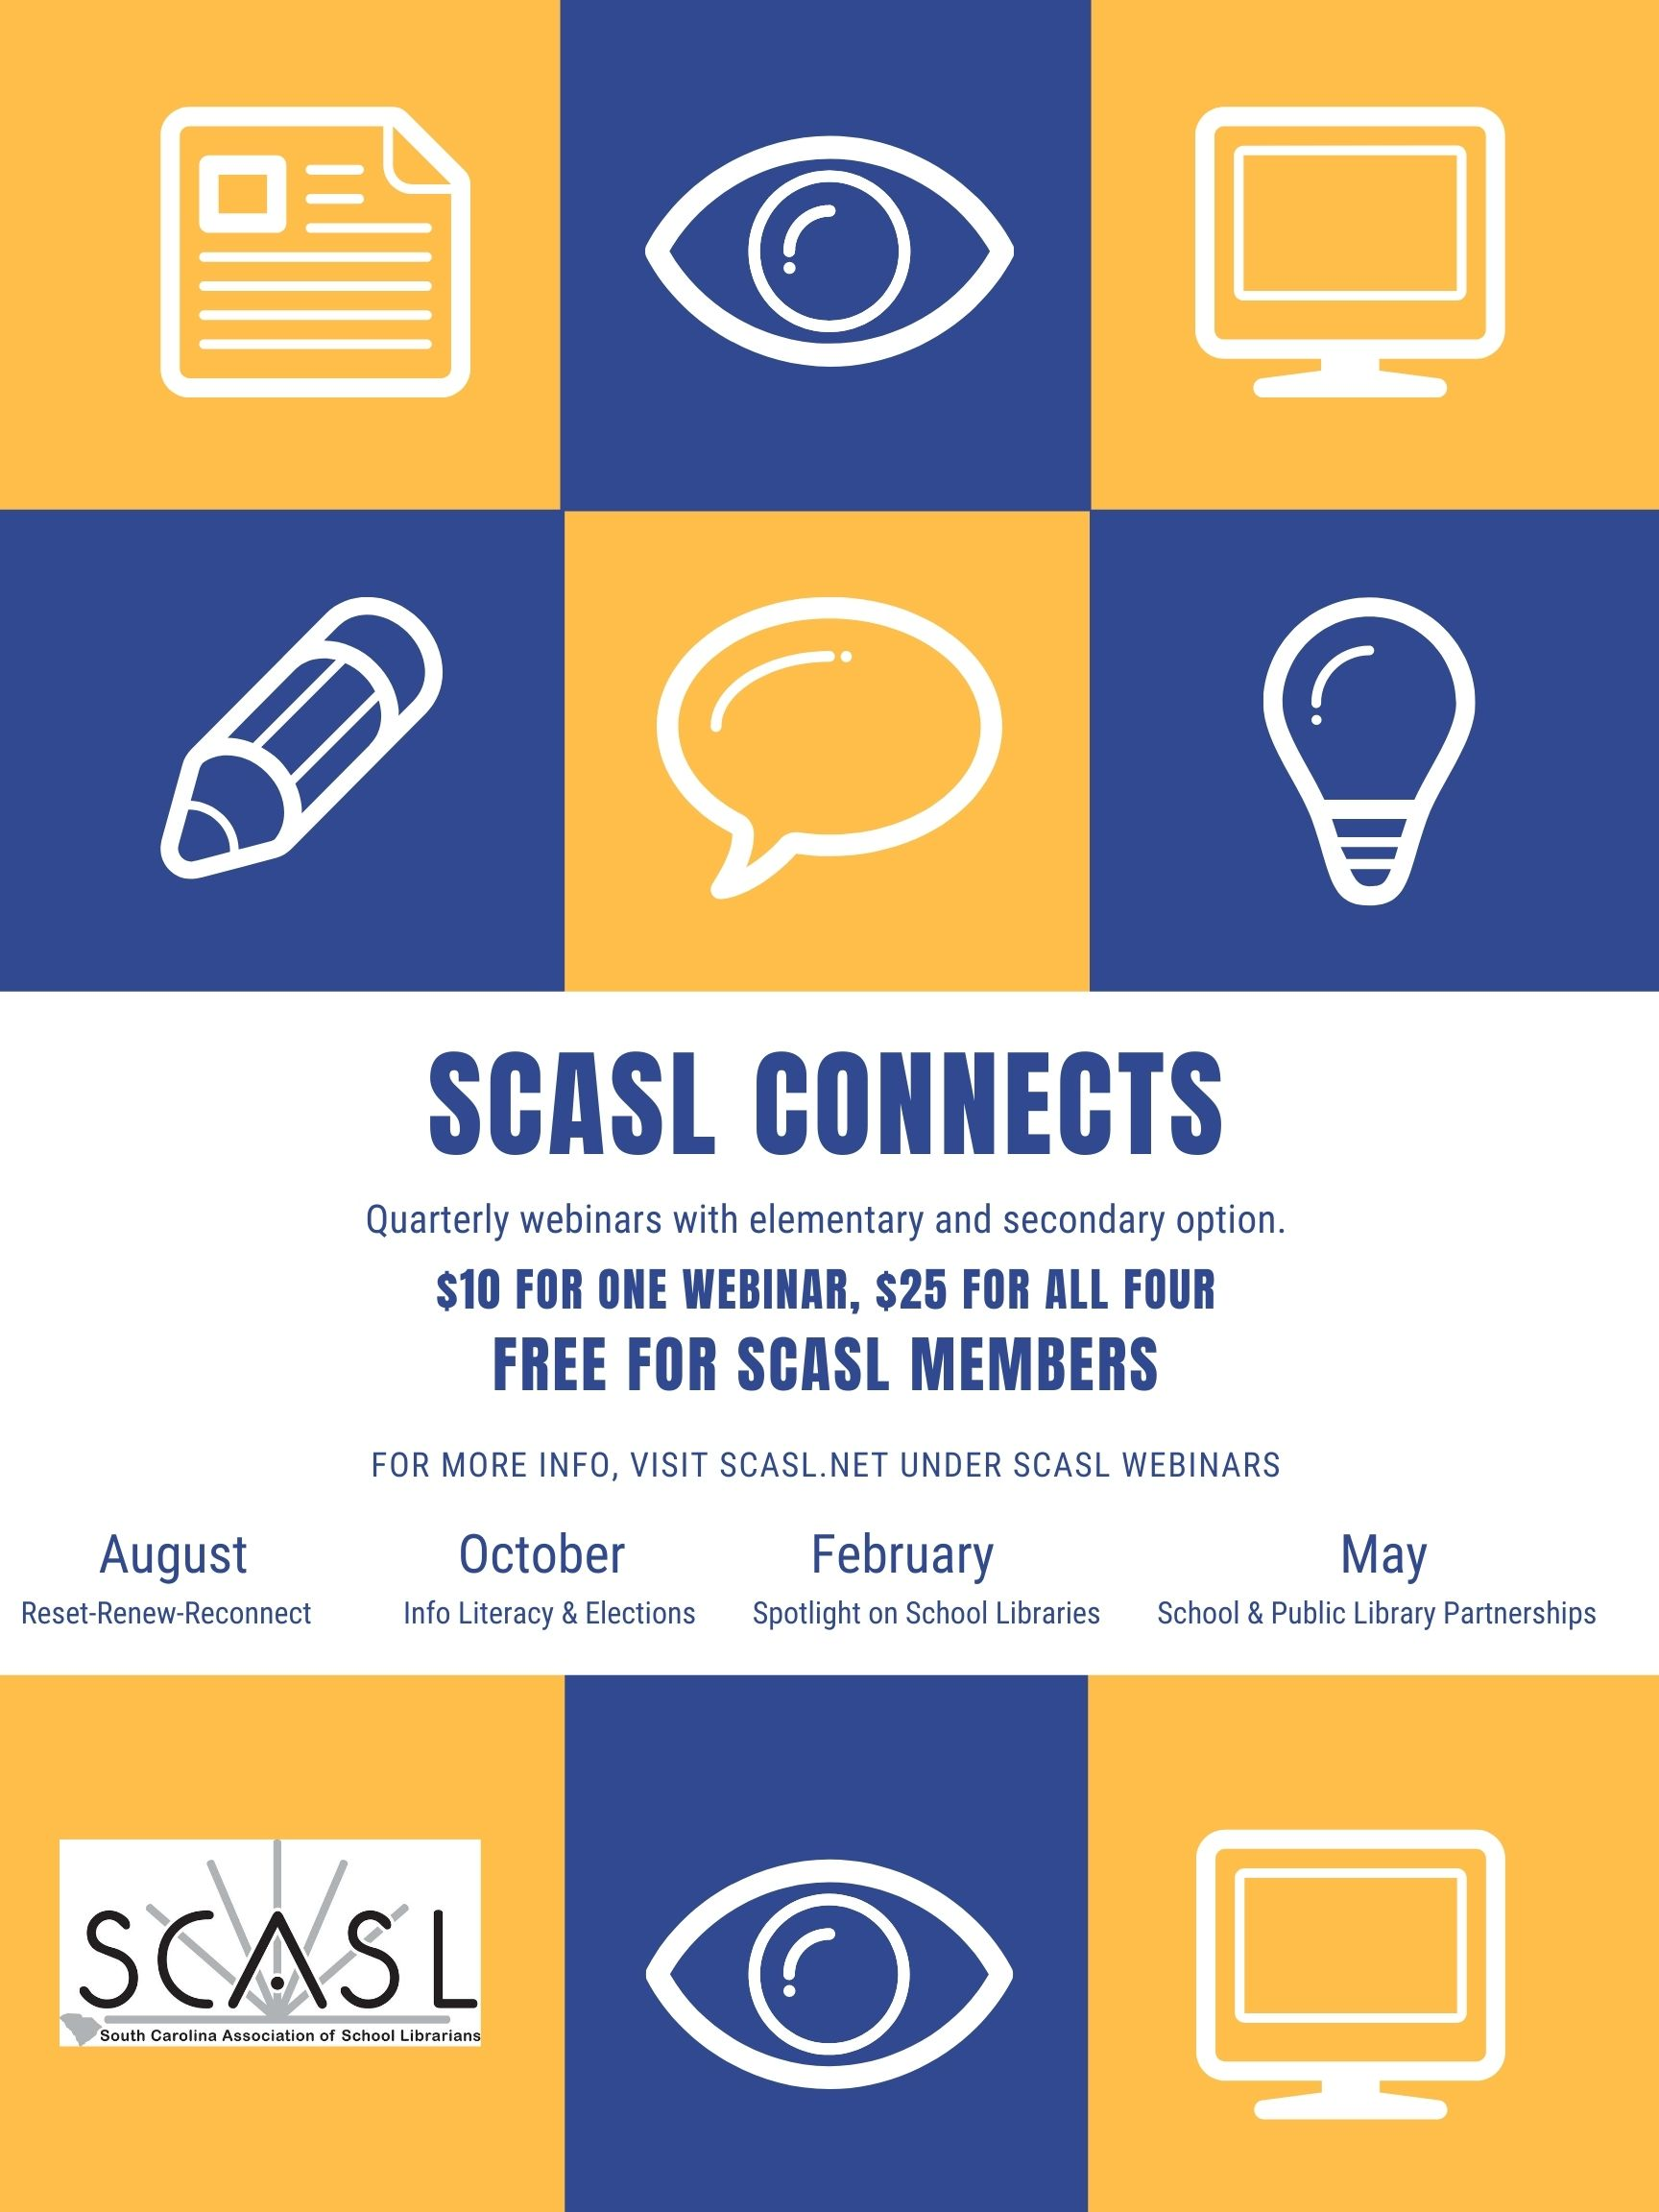 SCASL Connect Webinar Series